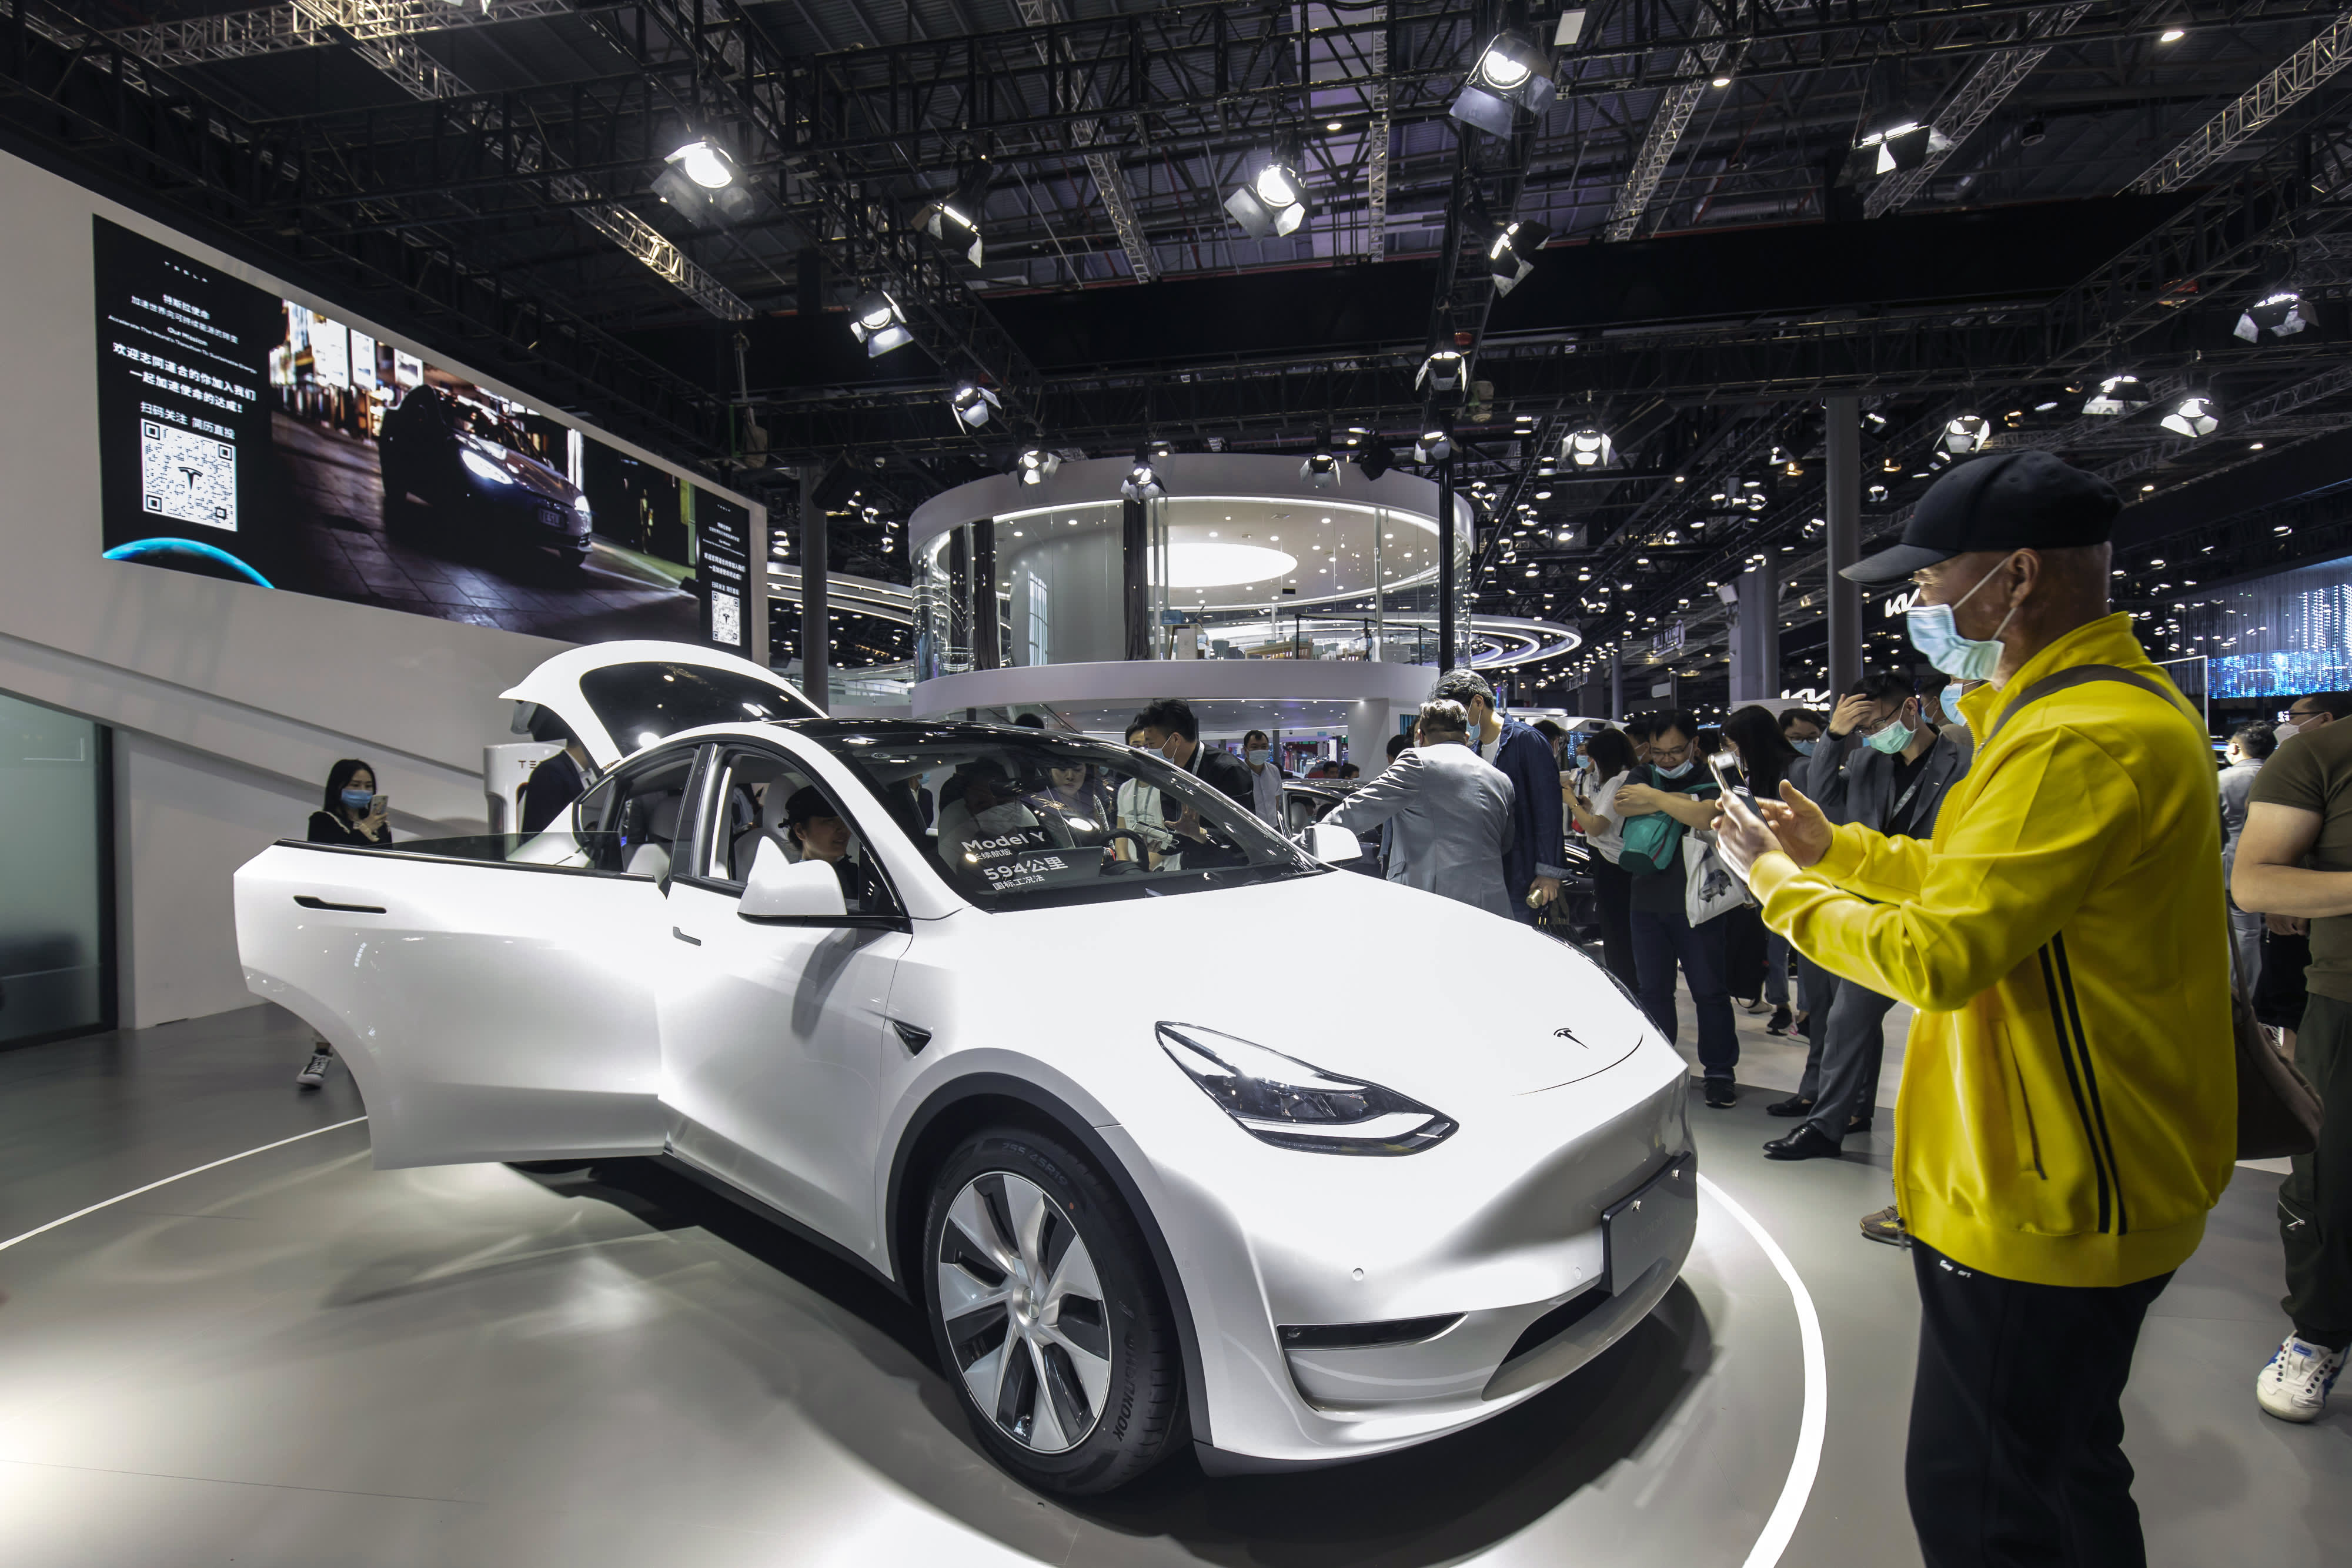 China's EV sector is poised for 'inevitable' consolidation, says Bain guide